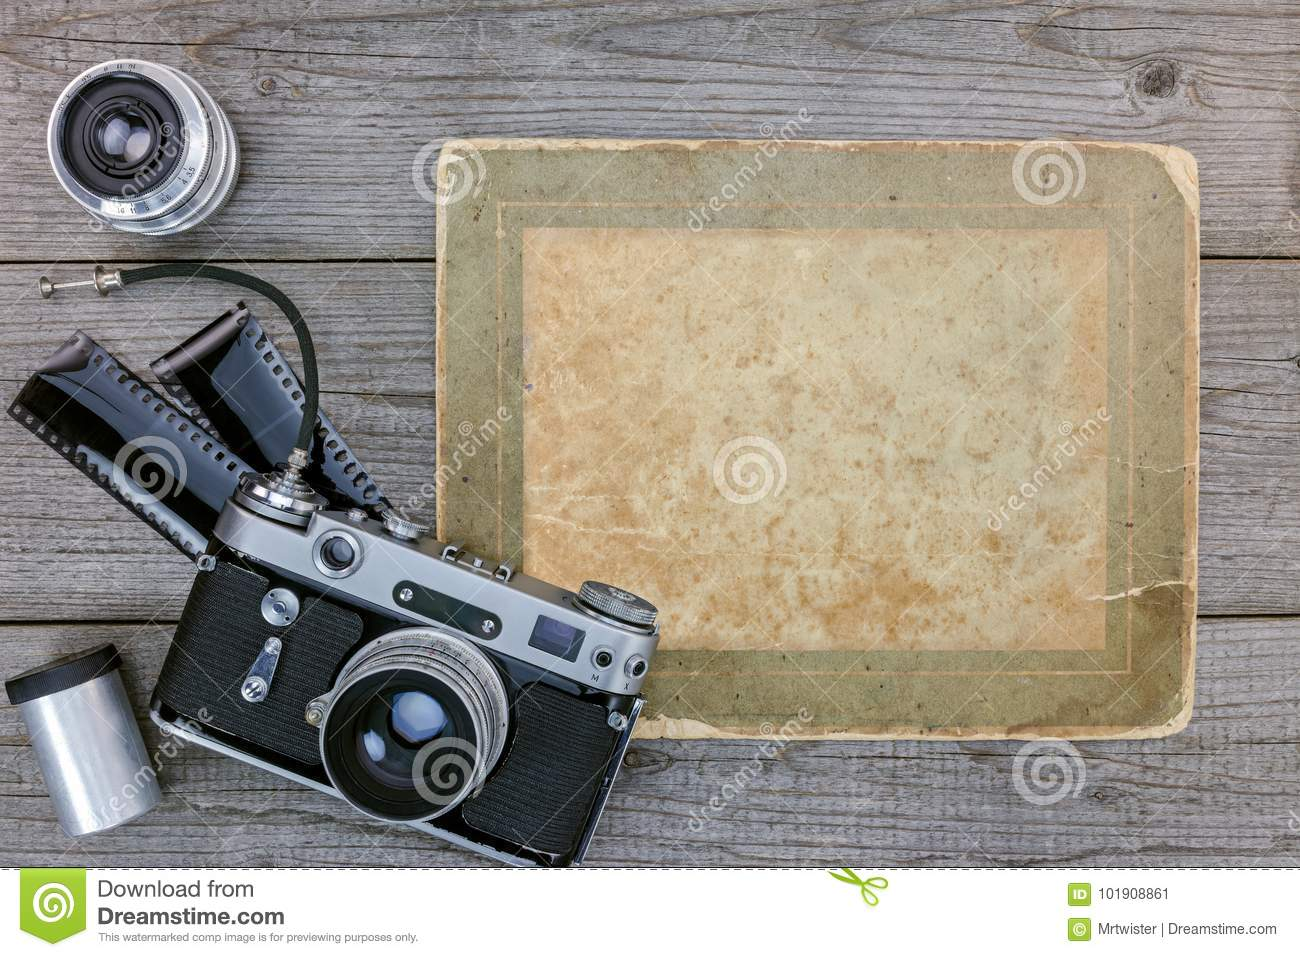 Retro camera, negative film, lenses on wooden table background